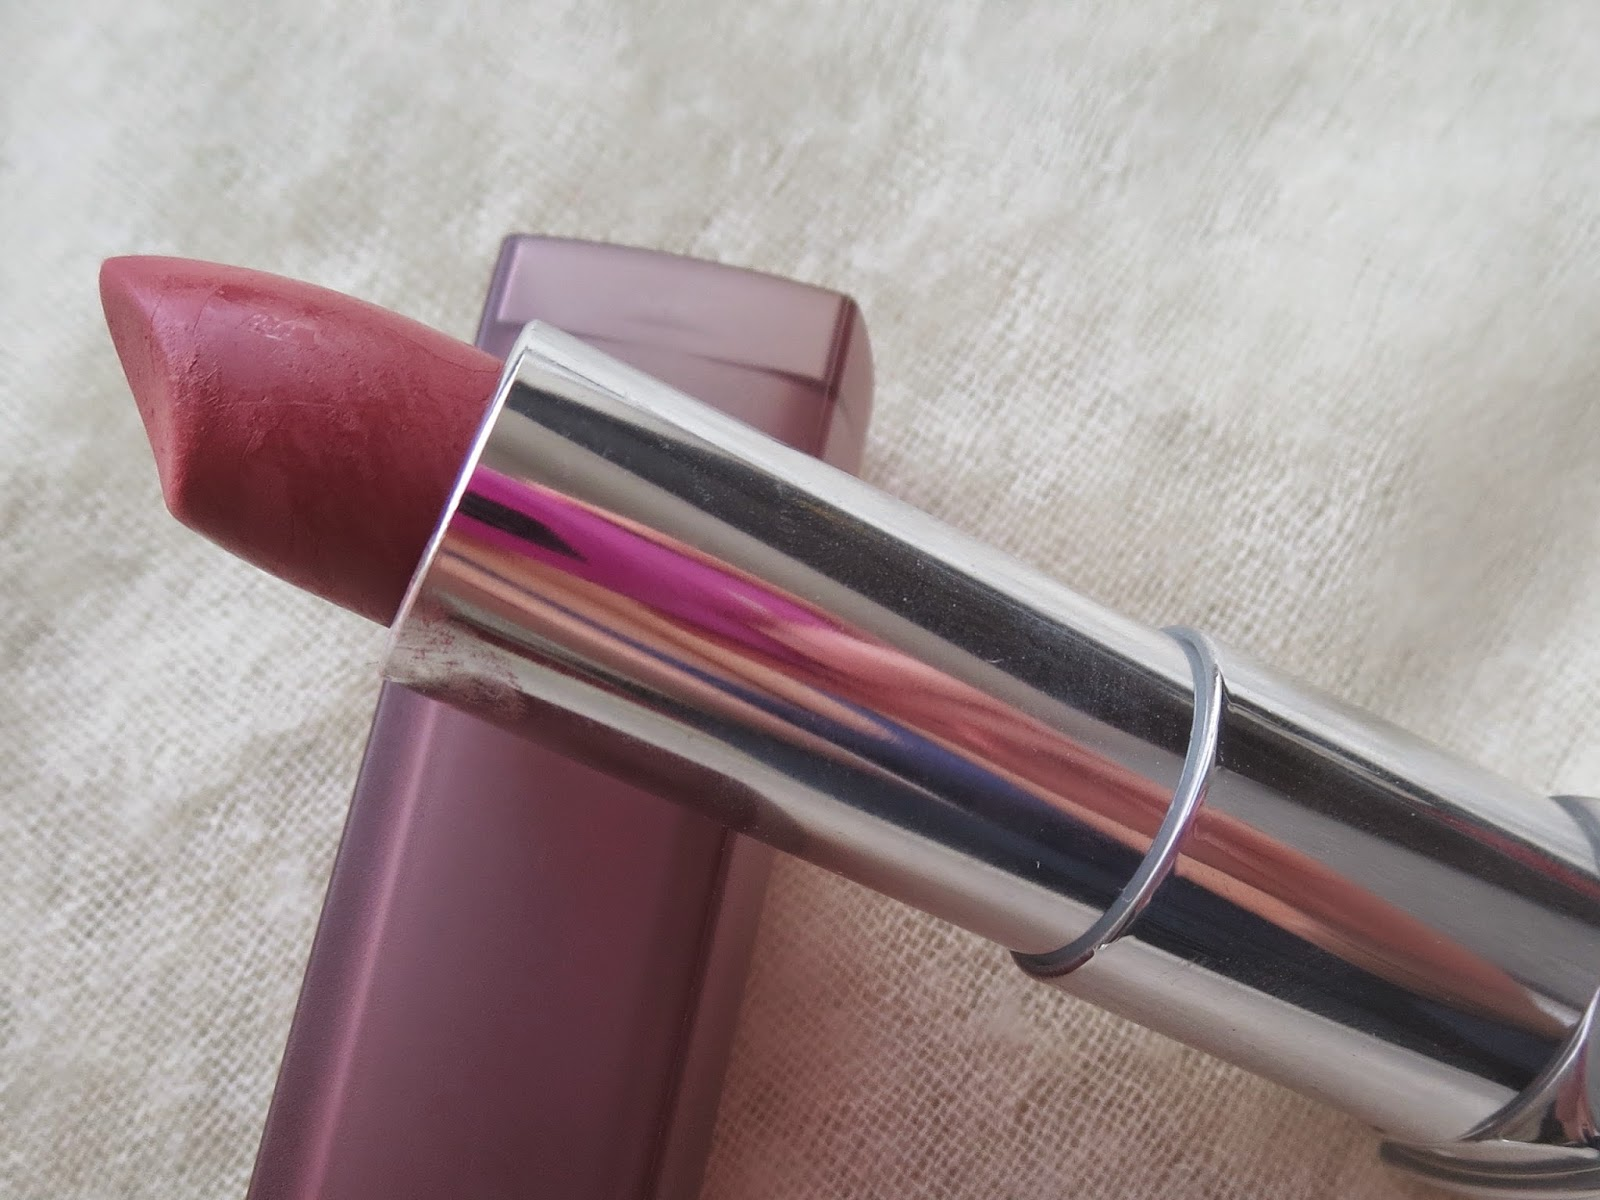 a picture of Maybelline Touch of Spice